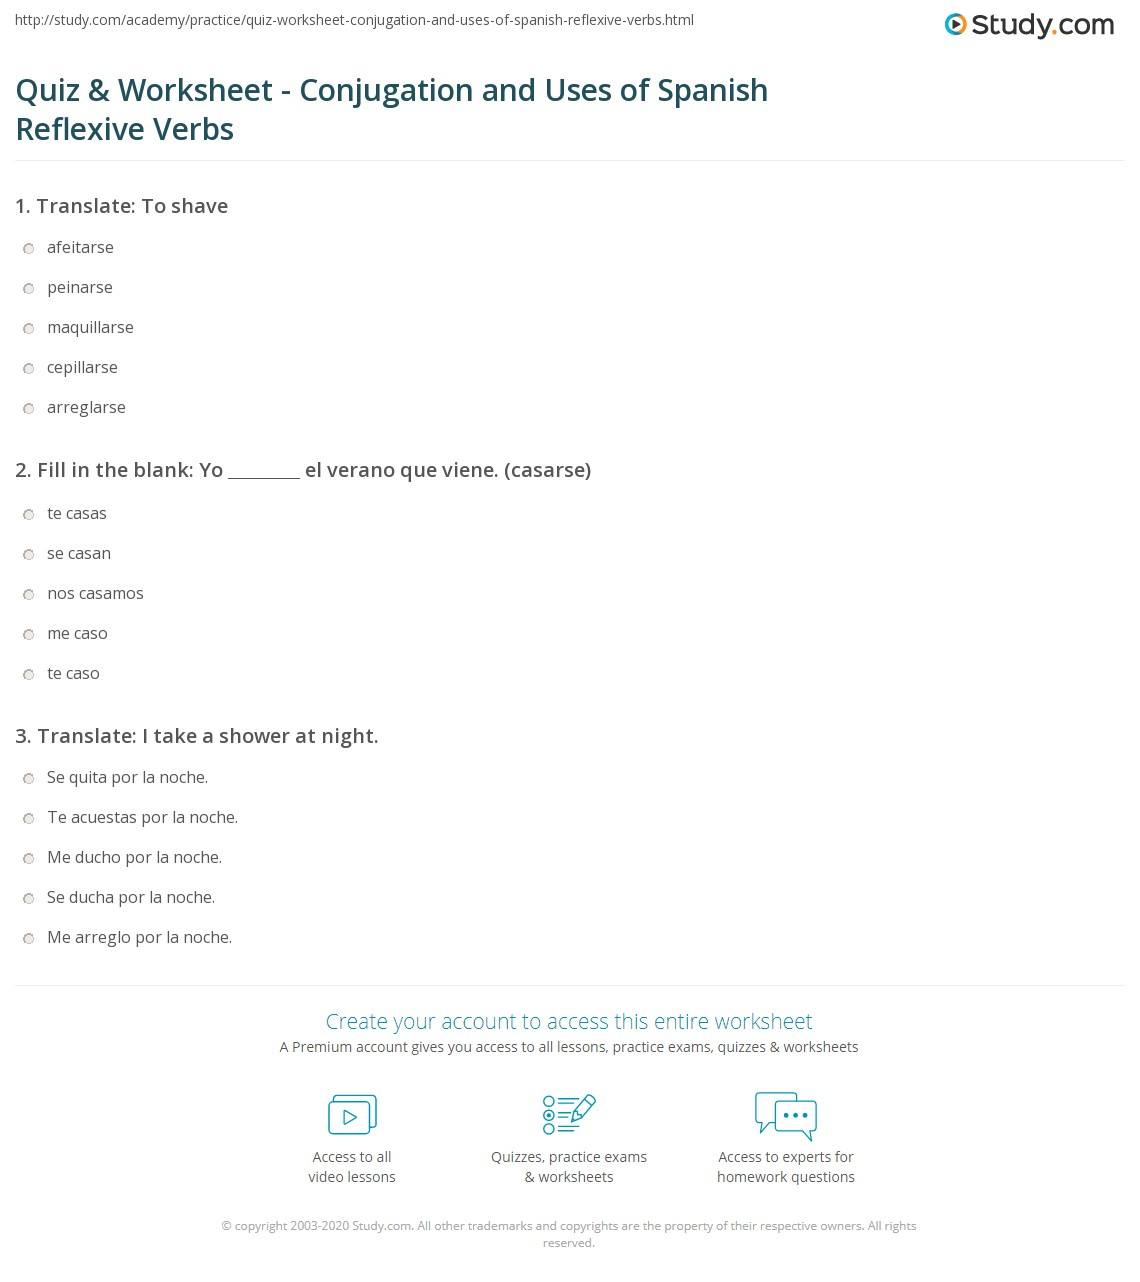 Worksheets Spanish Reflexive Verbs Worksheet quiz worksheet conjugation and uses of spanish reflexive verbs print worksheet